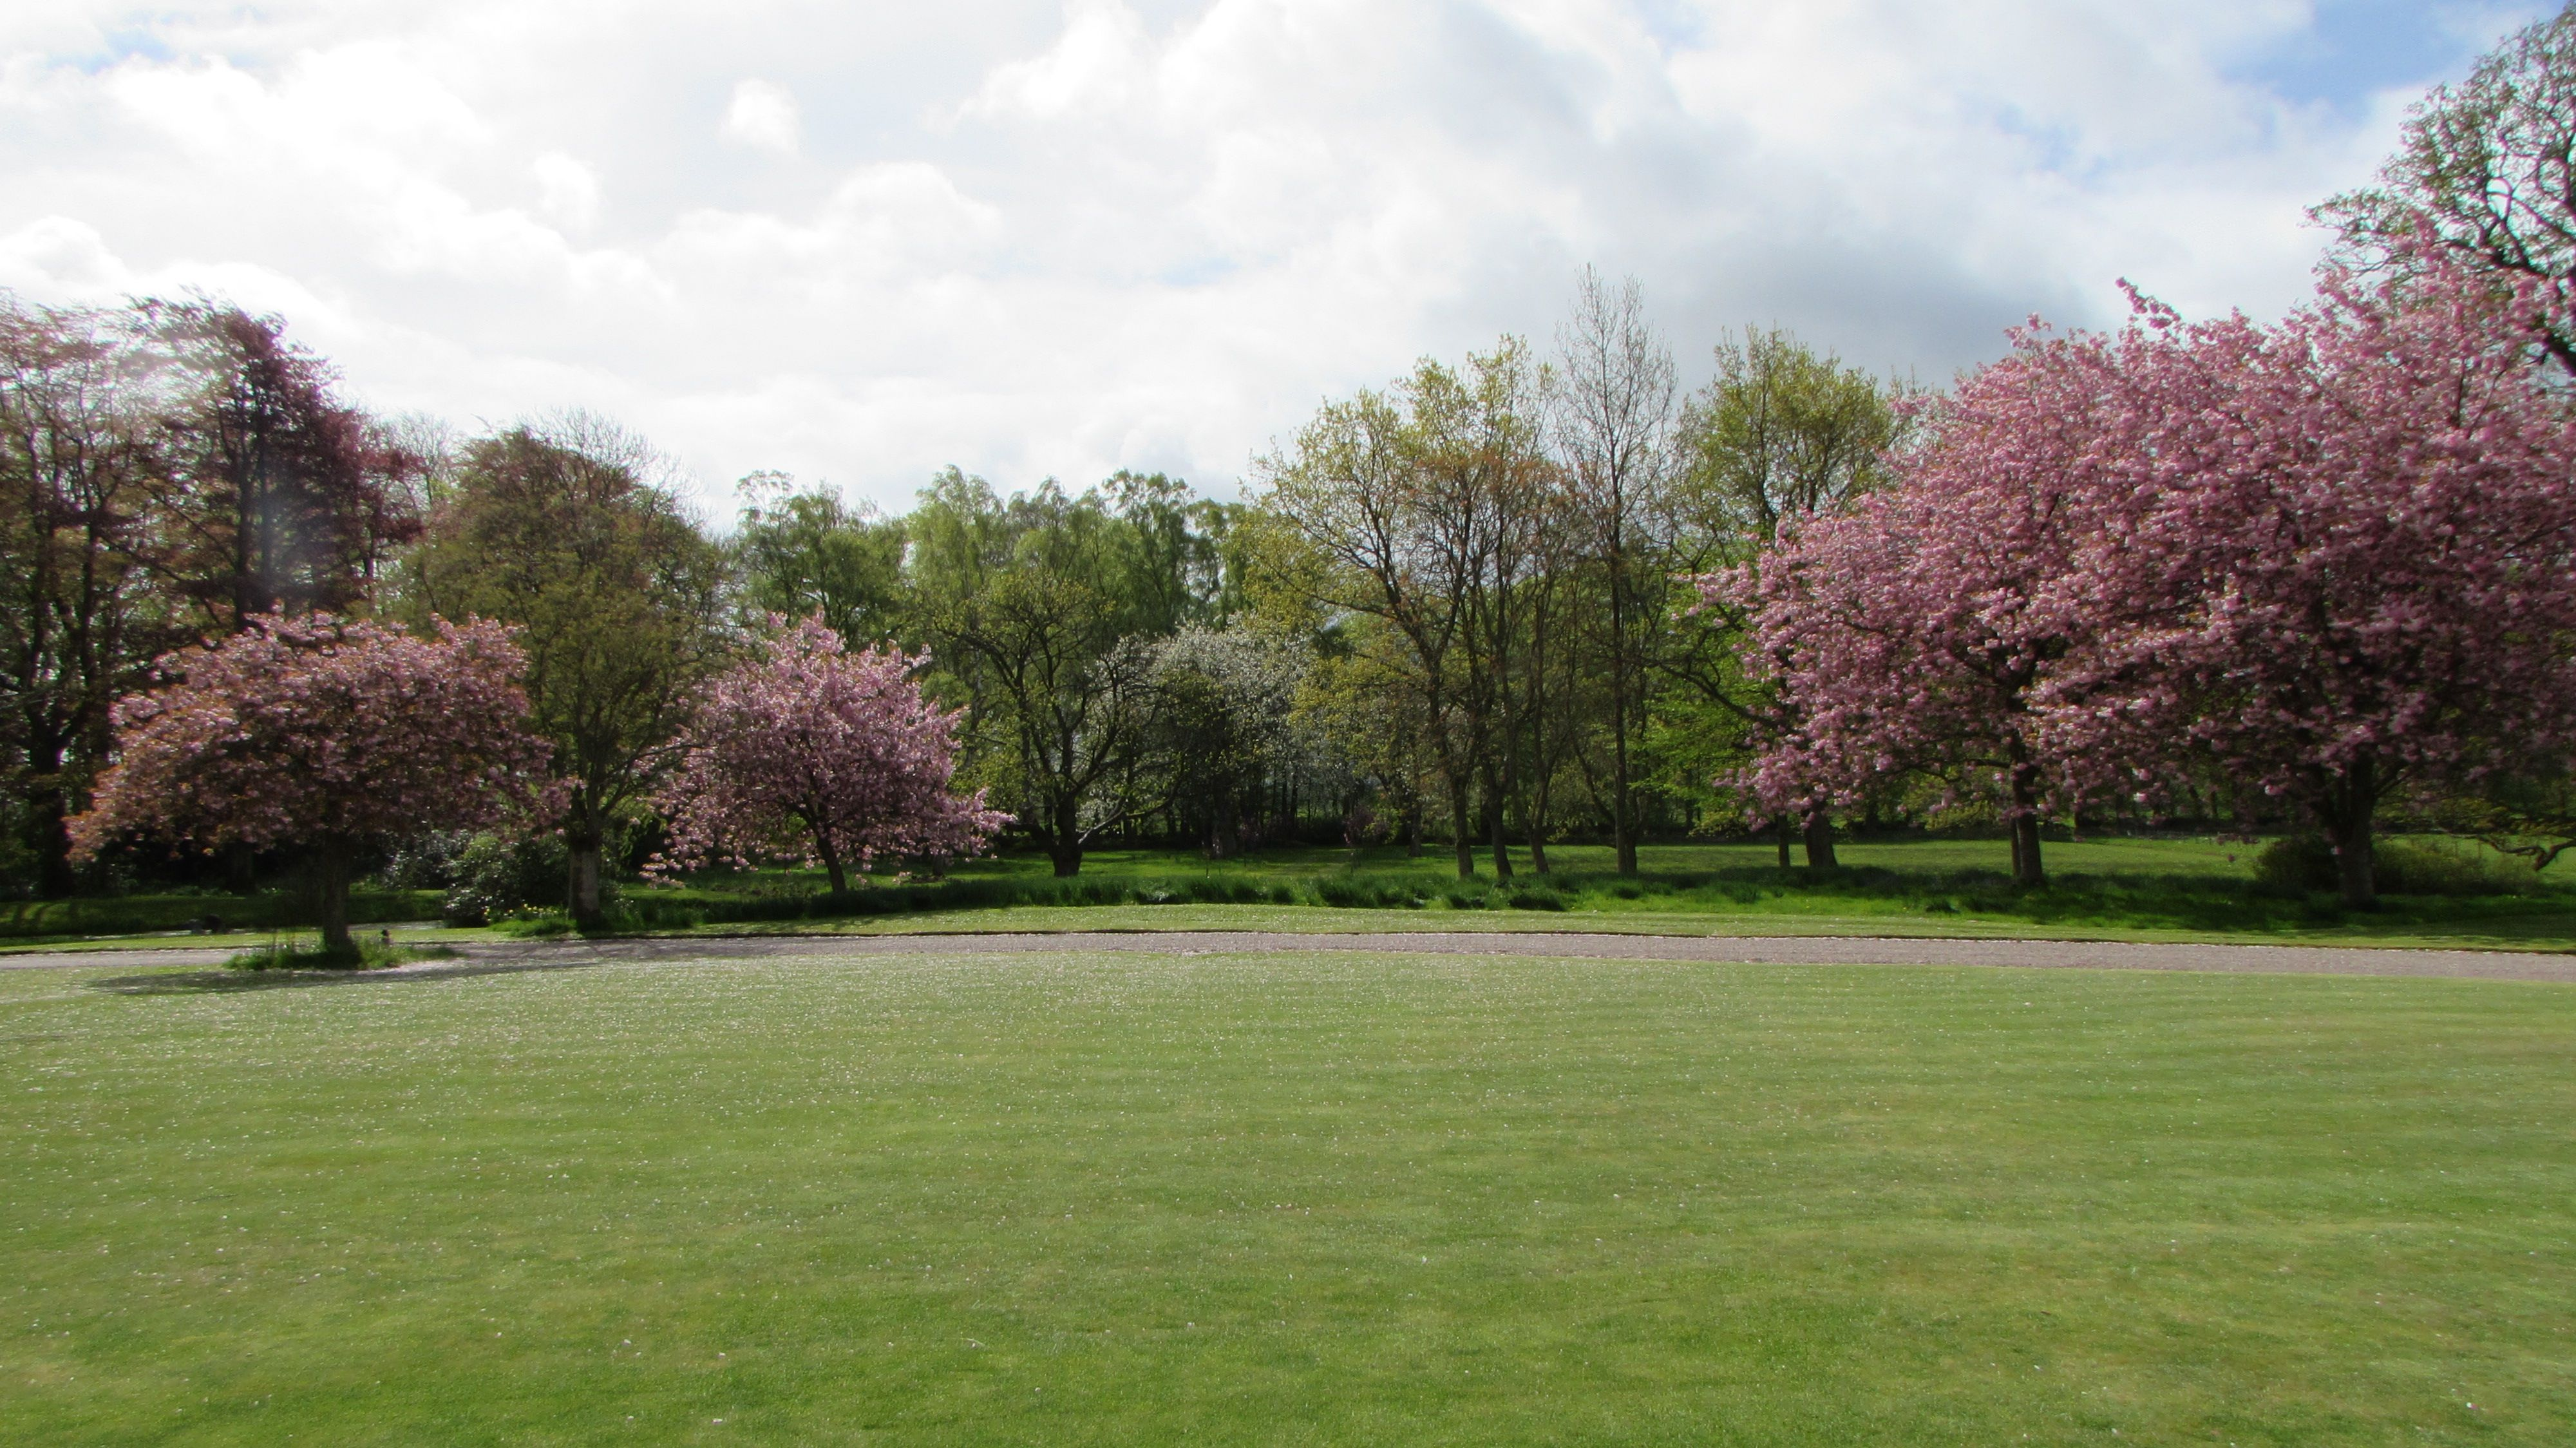 Beautiful Cherry blossoms on the Croquet lawn. #Myrescastle